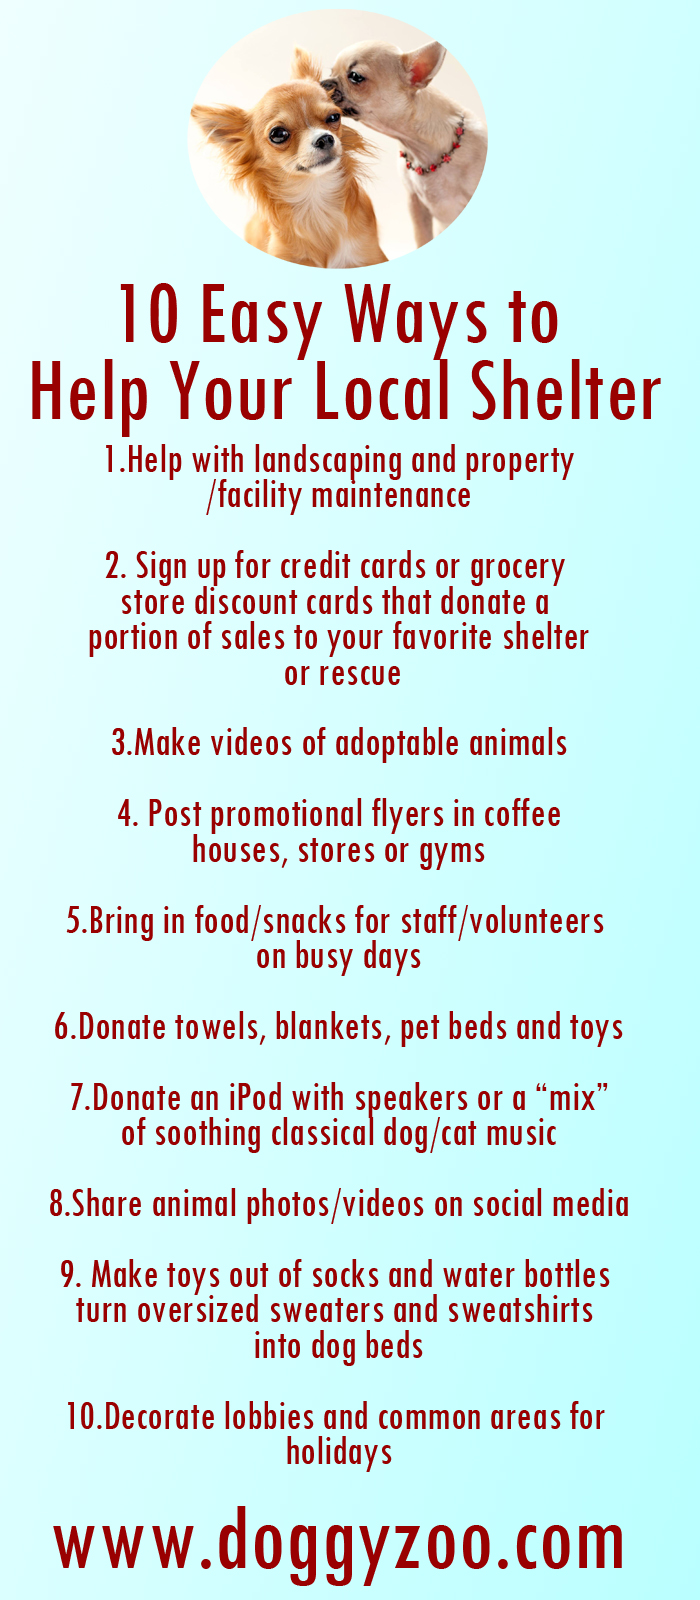 10 Easy Ways To Fix Your Door In Under An Hour: 10 Easy Ways To Help Your Local Shelter